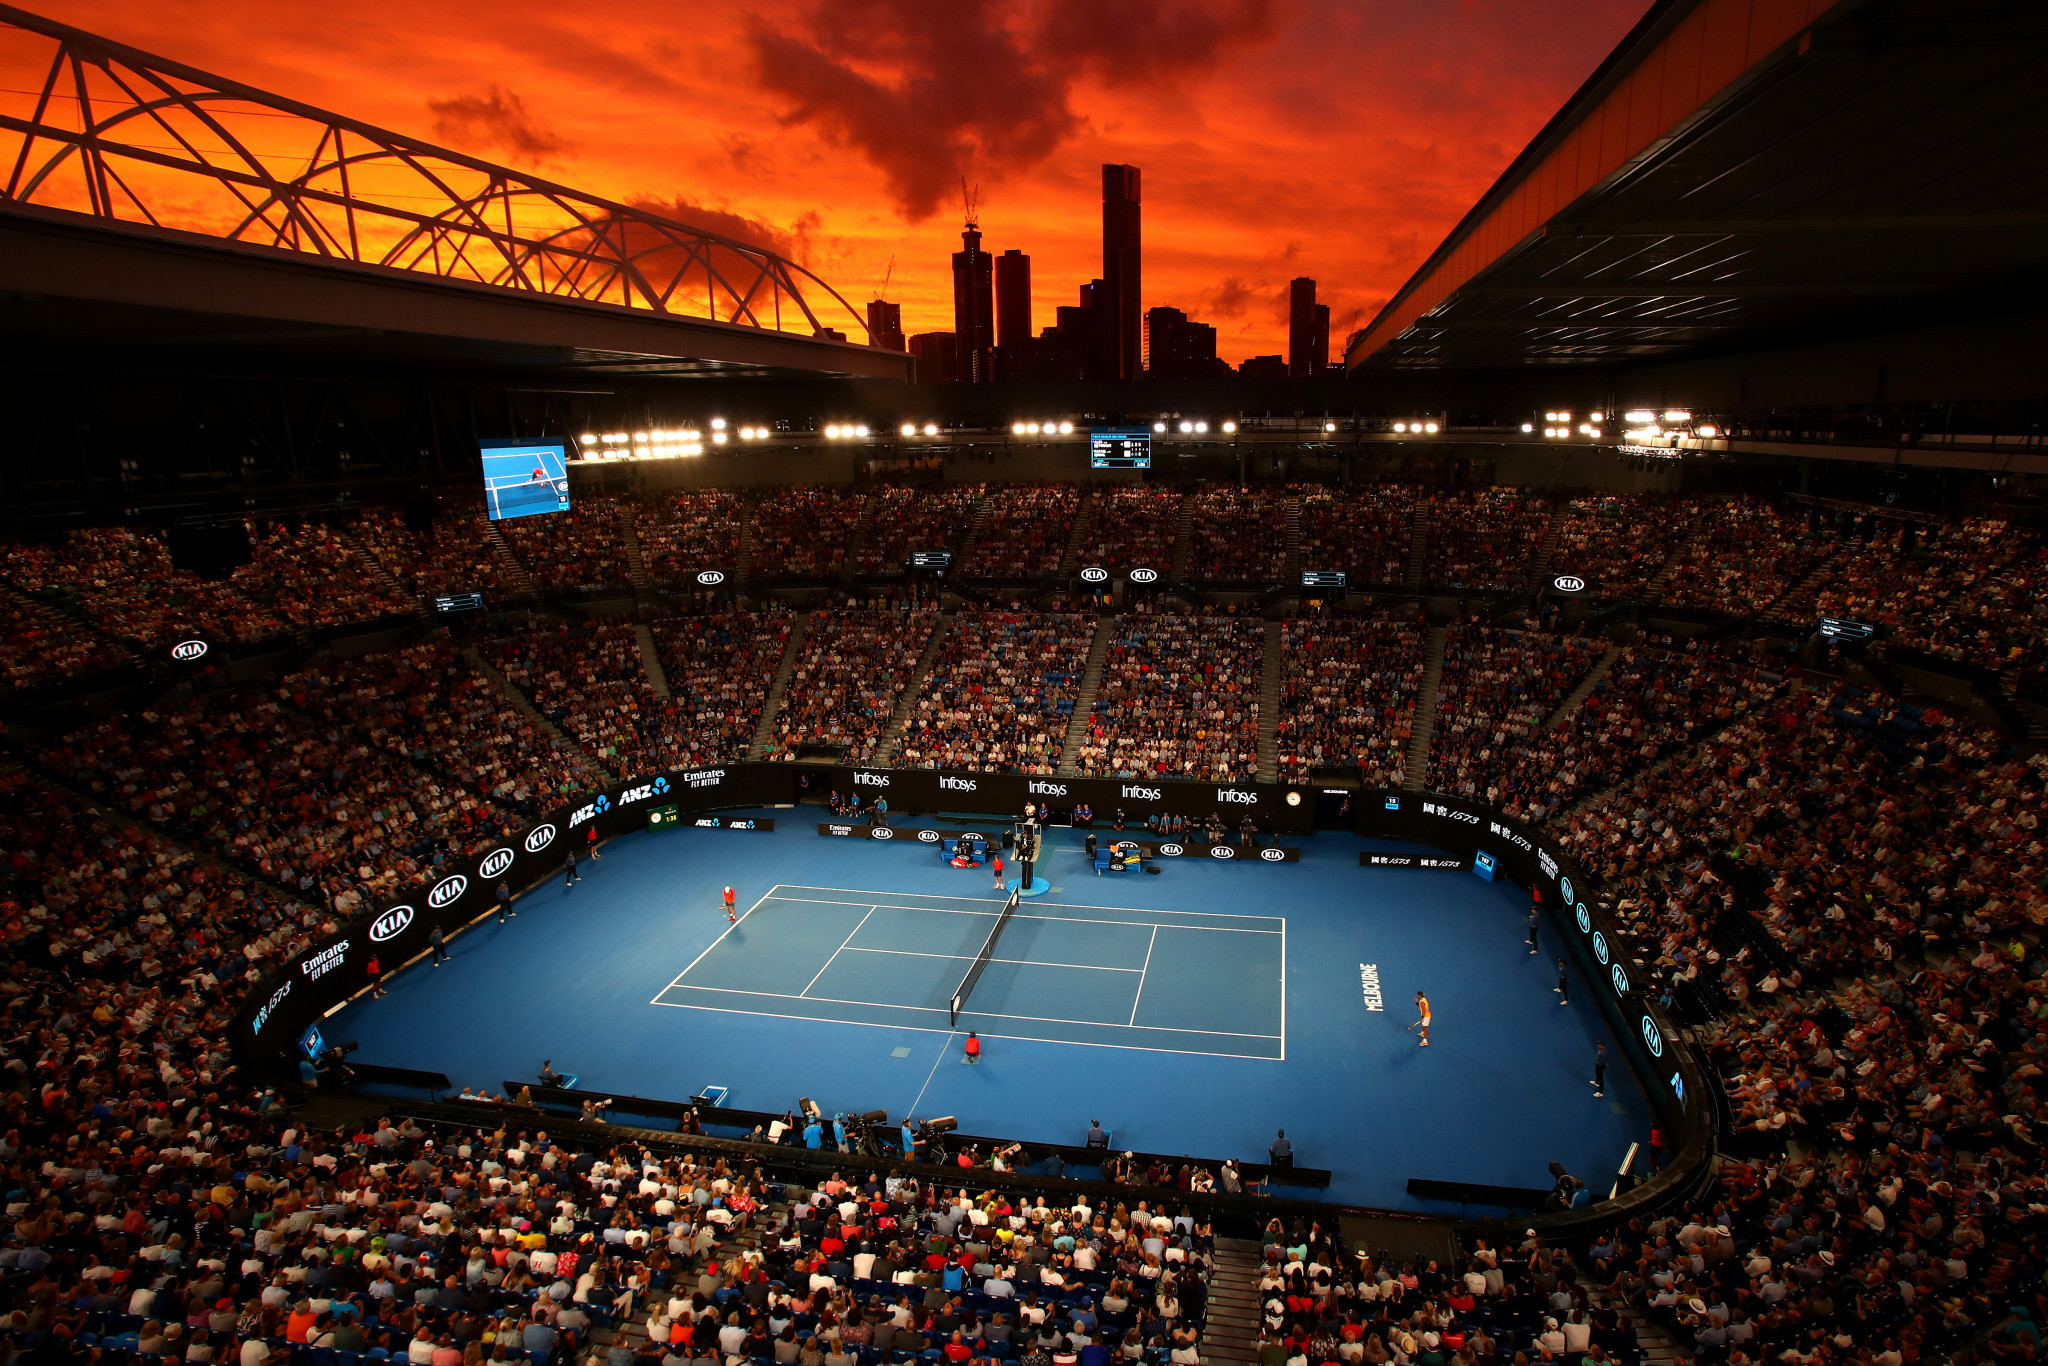 The Australian Open could face postponement due COVID-19 restrictions ©Getty Images